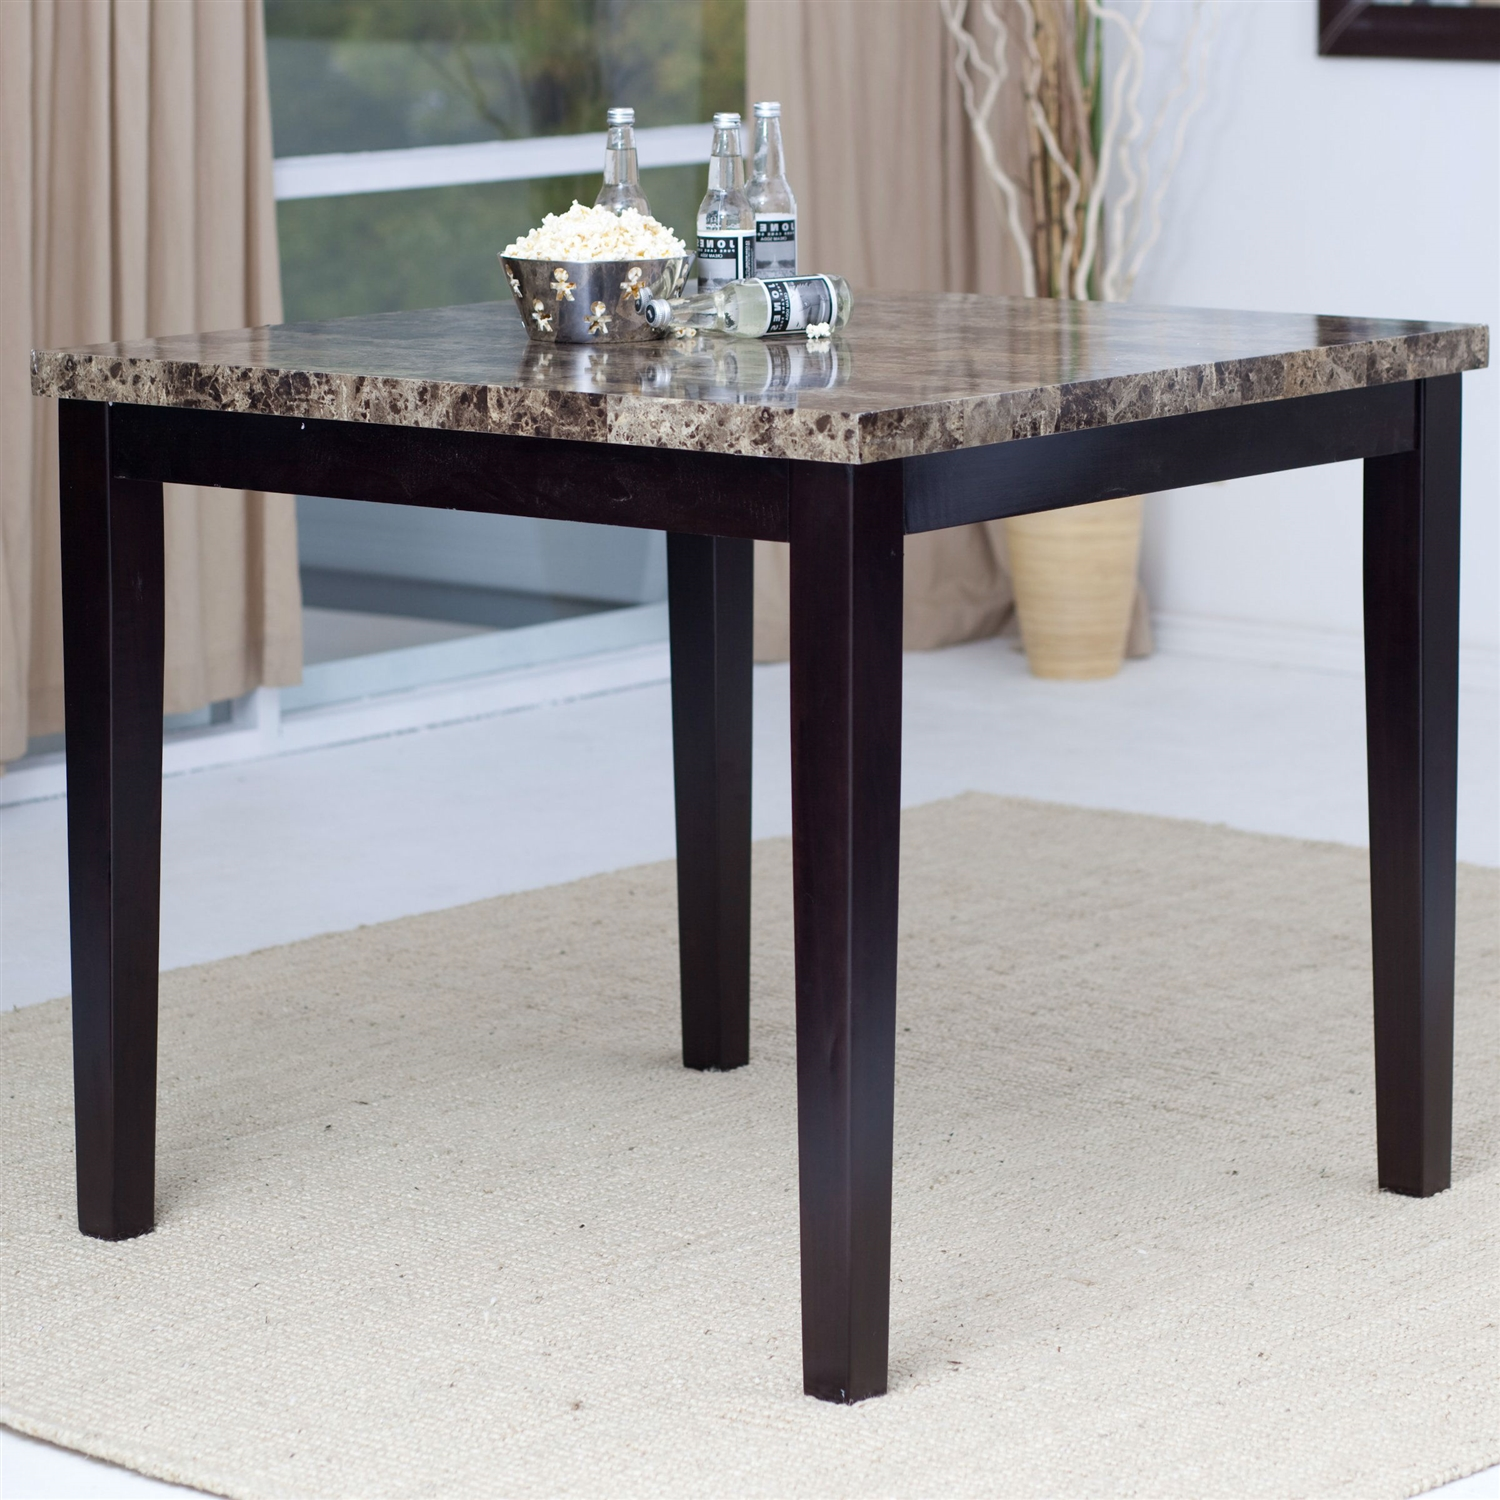 Faux Marble Table From Big Lots: Contemporary 42 X 42 Inch Counter Height Dining Table With